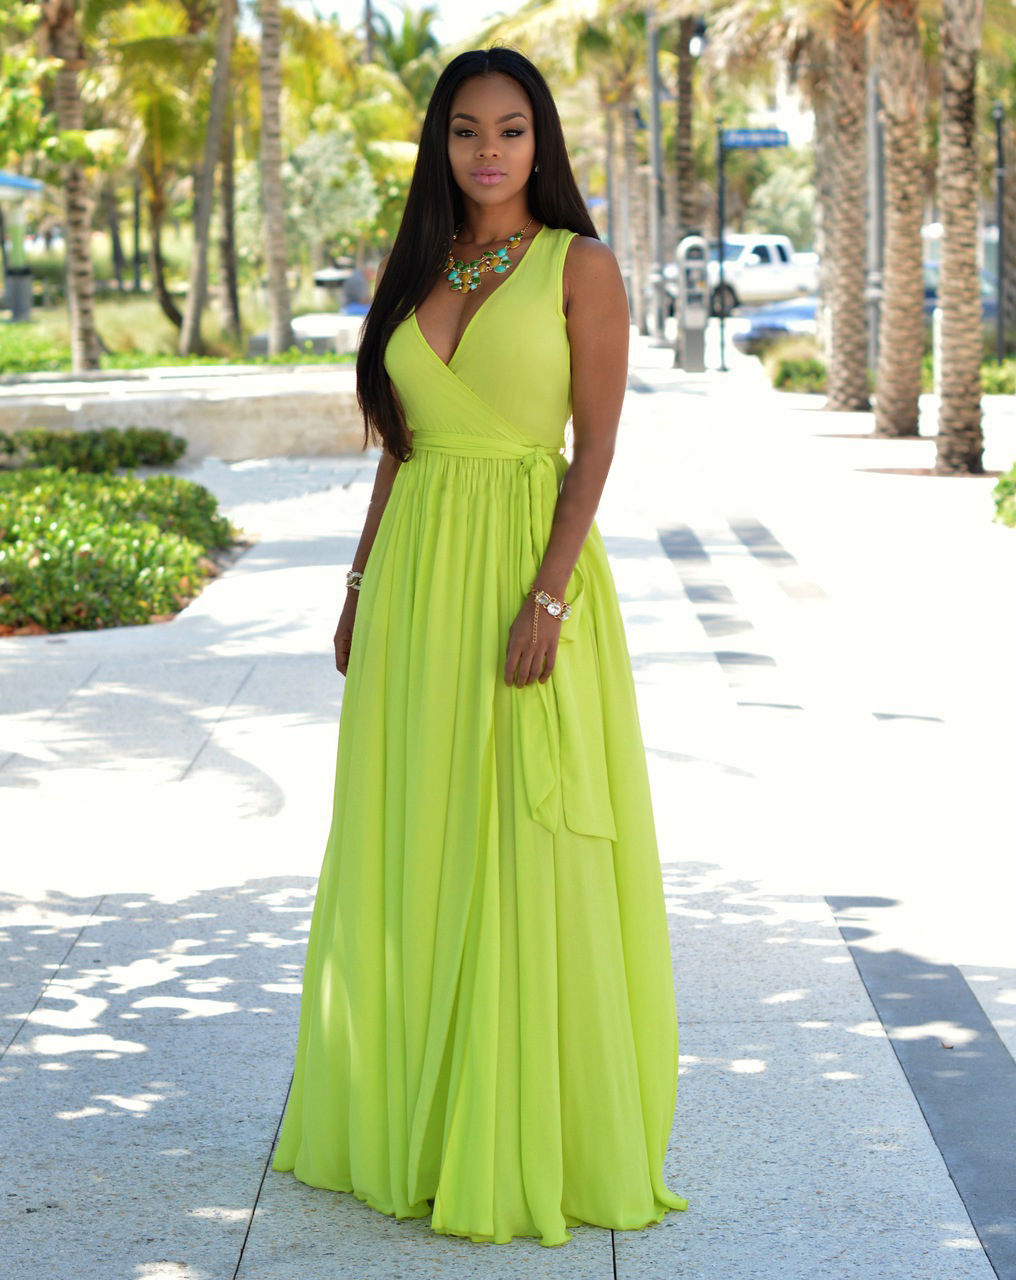 STUNNING FREE FLOWING MAXI DRESS | ADDICTED2FASHION